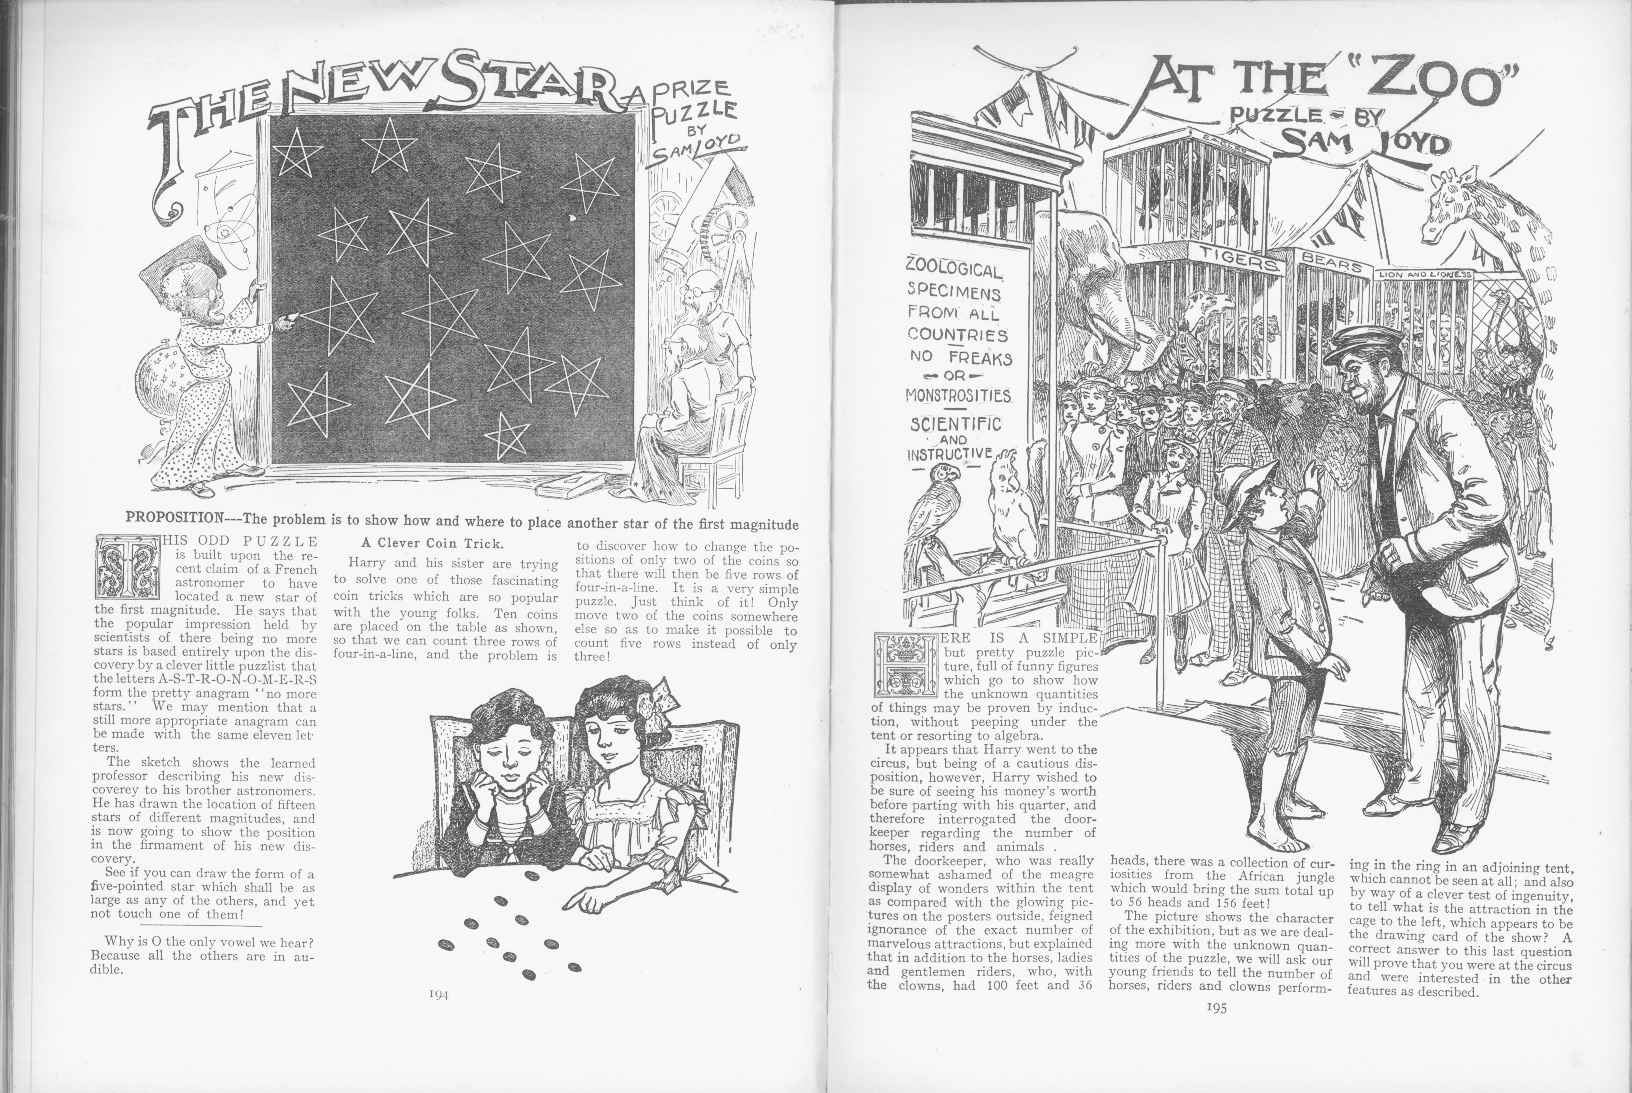 Sam Loyd - Cyclopedia of Puzzles - page 194-195